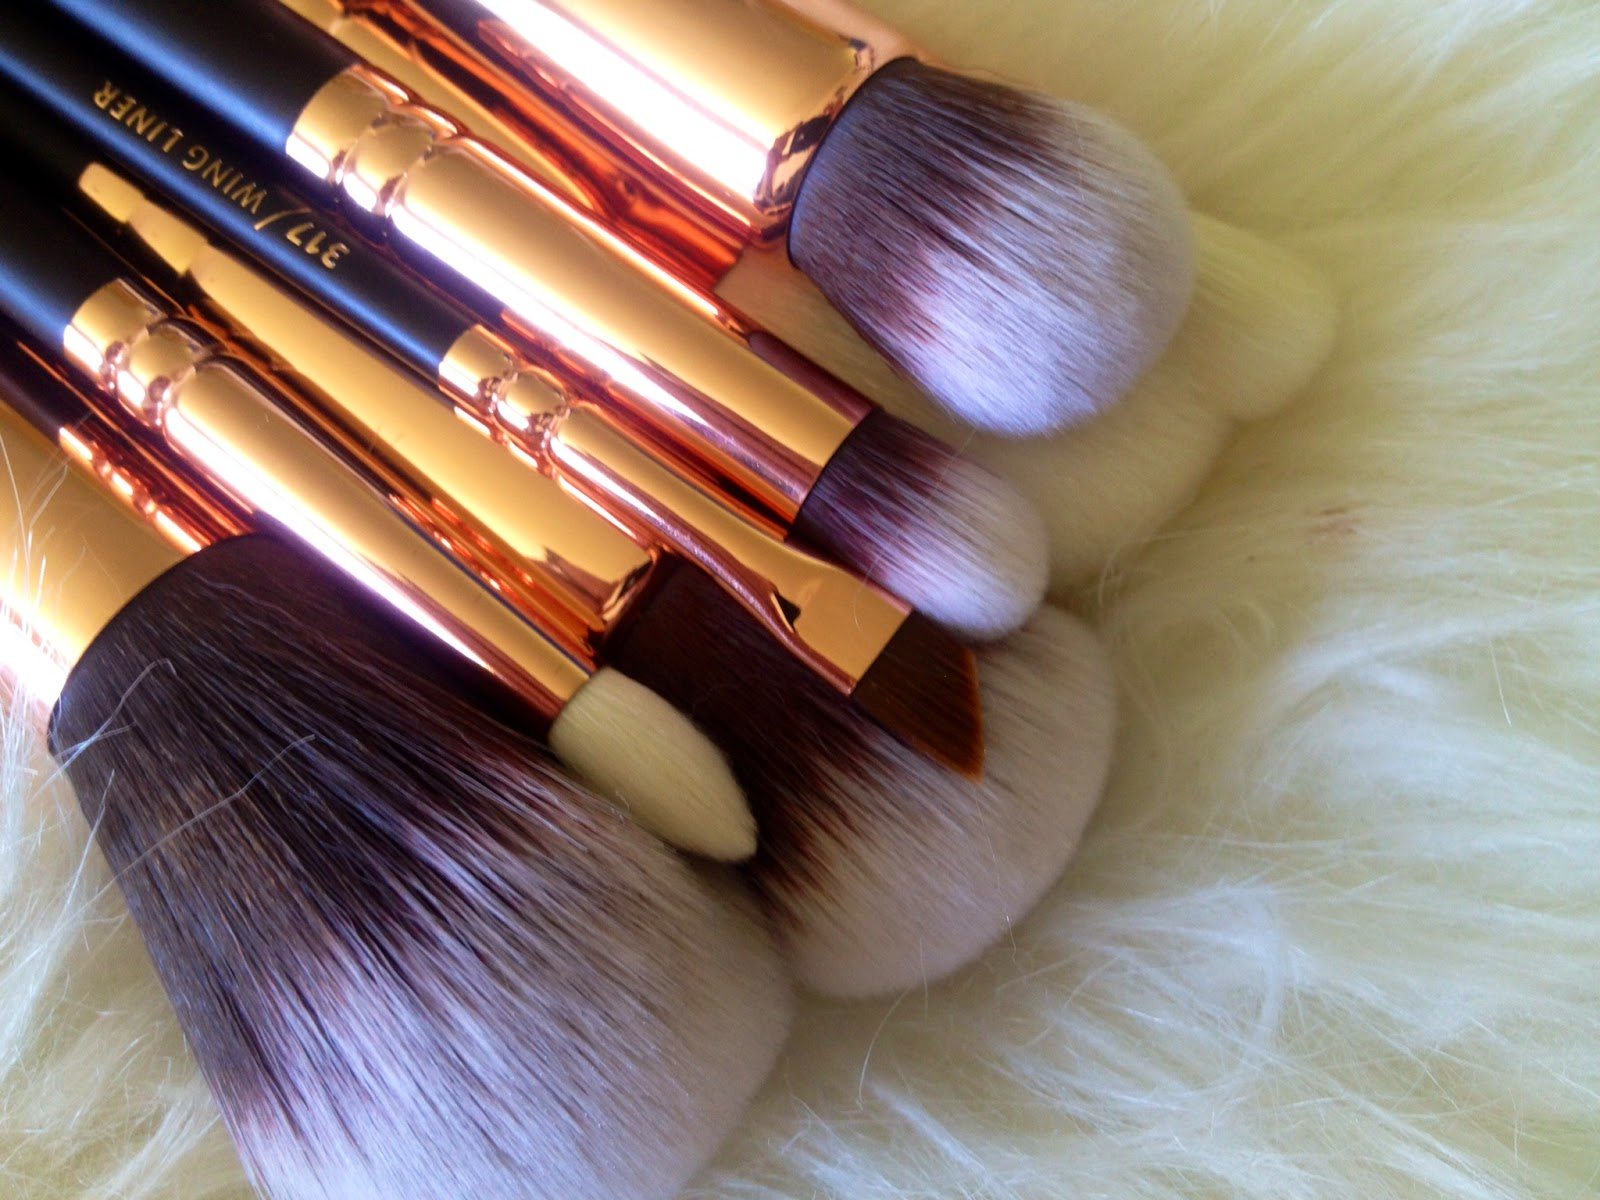 Zoeva Rose Golden Brush Set